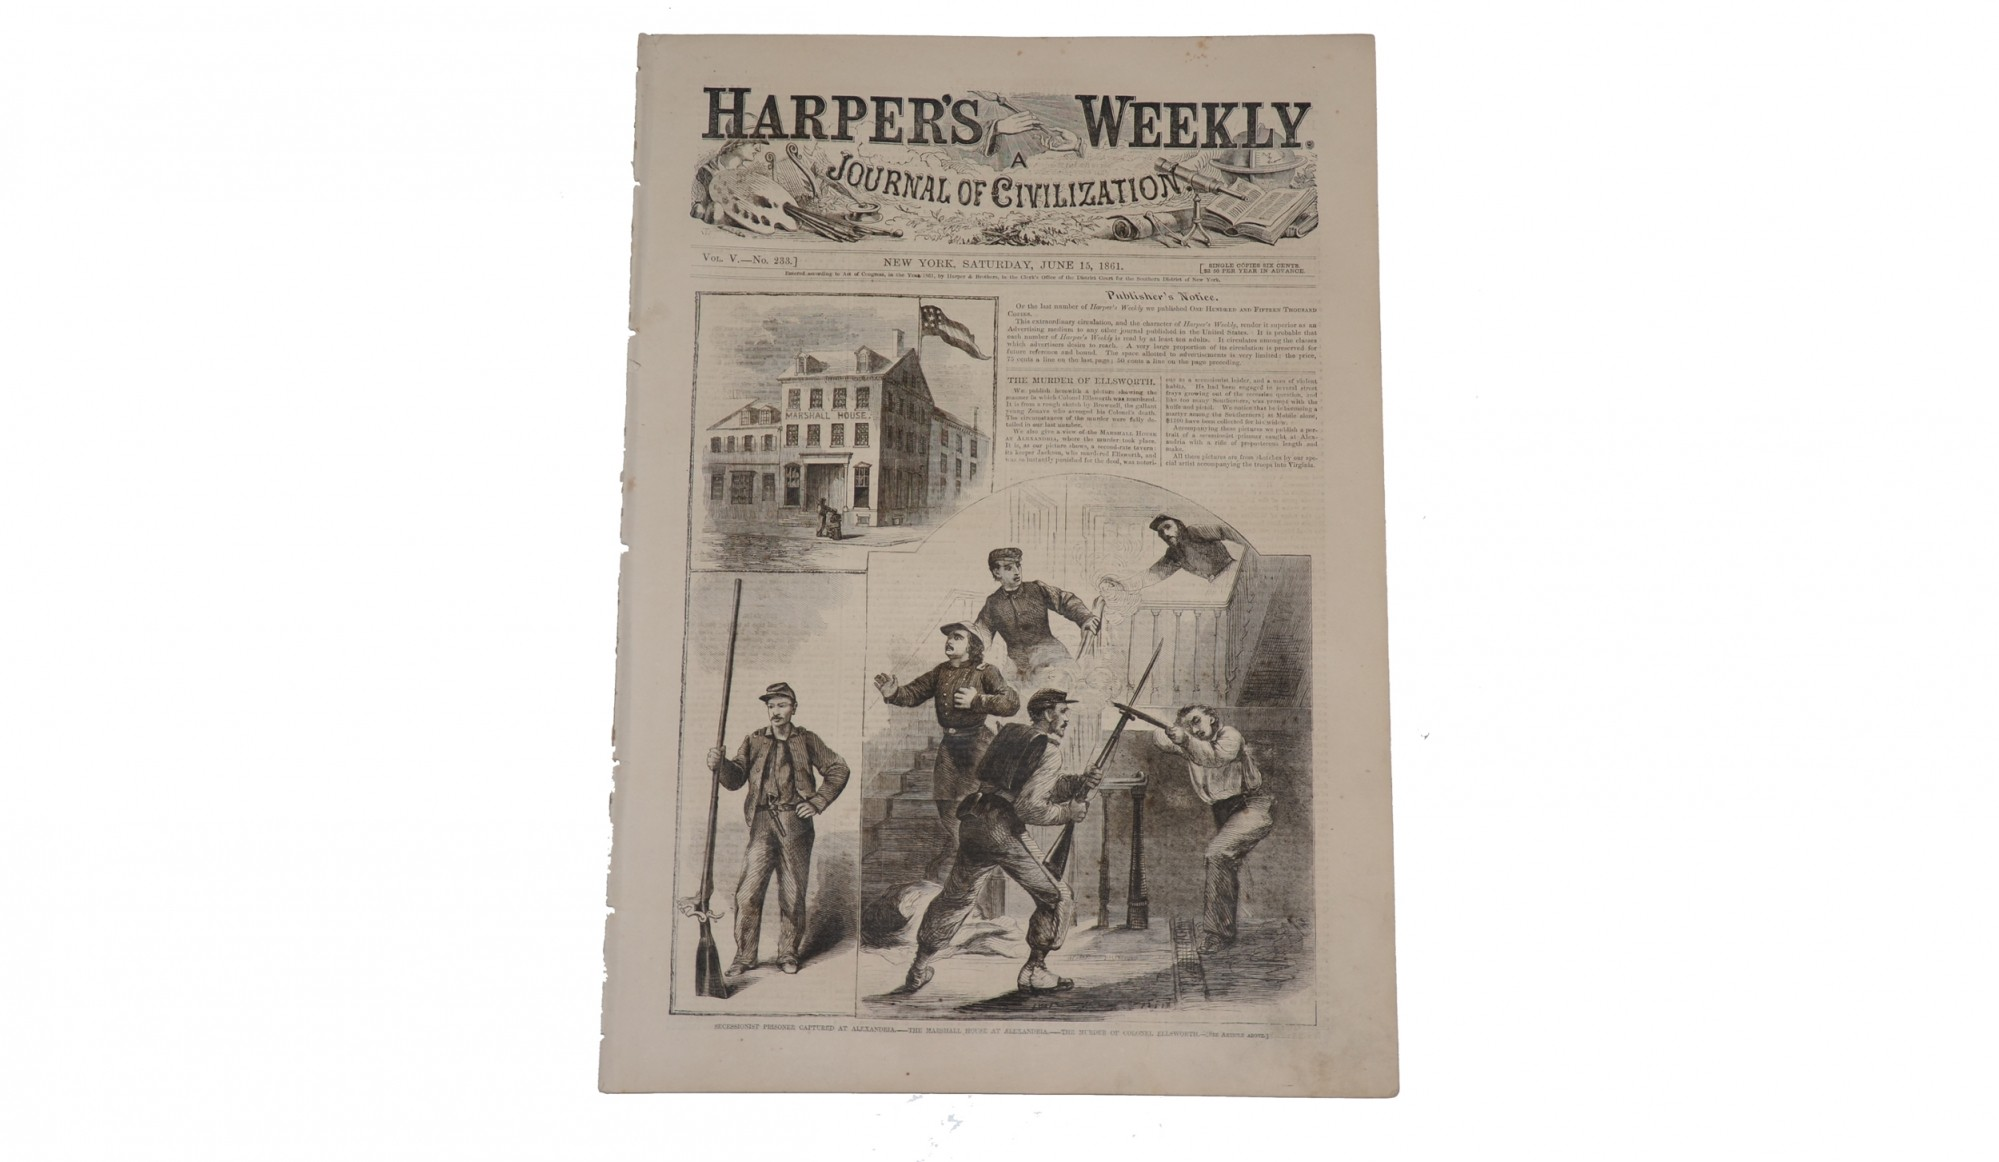 HARPER'S WEEKLY DATED JUNE 15, 1861 – COL. ELMER ELLSWORTH